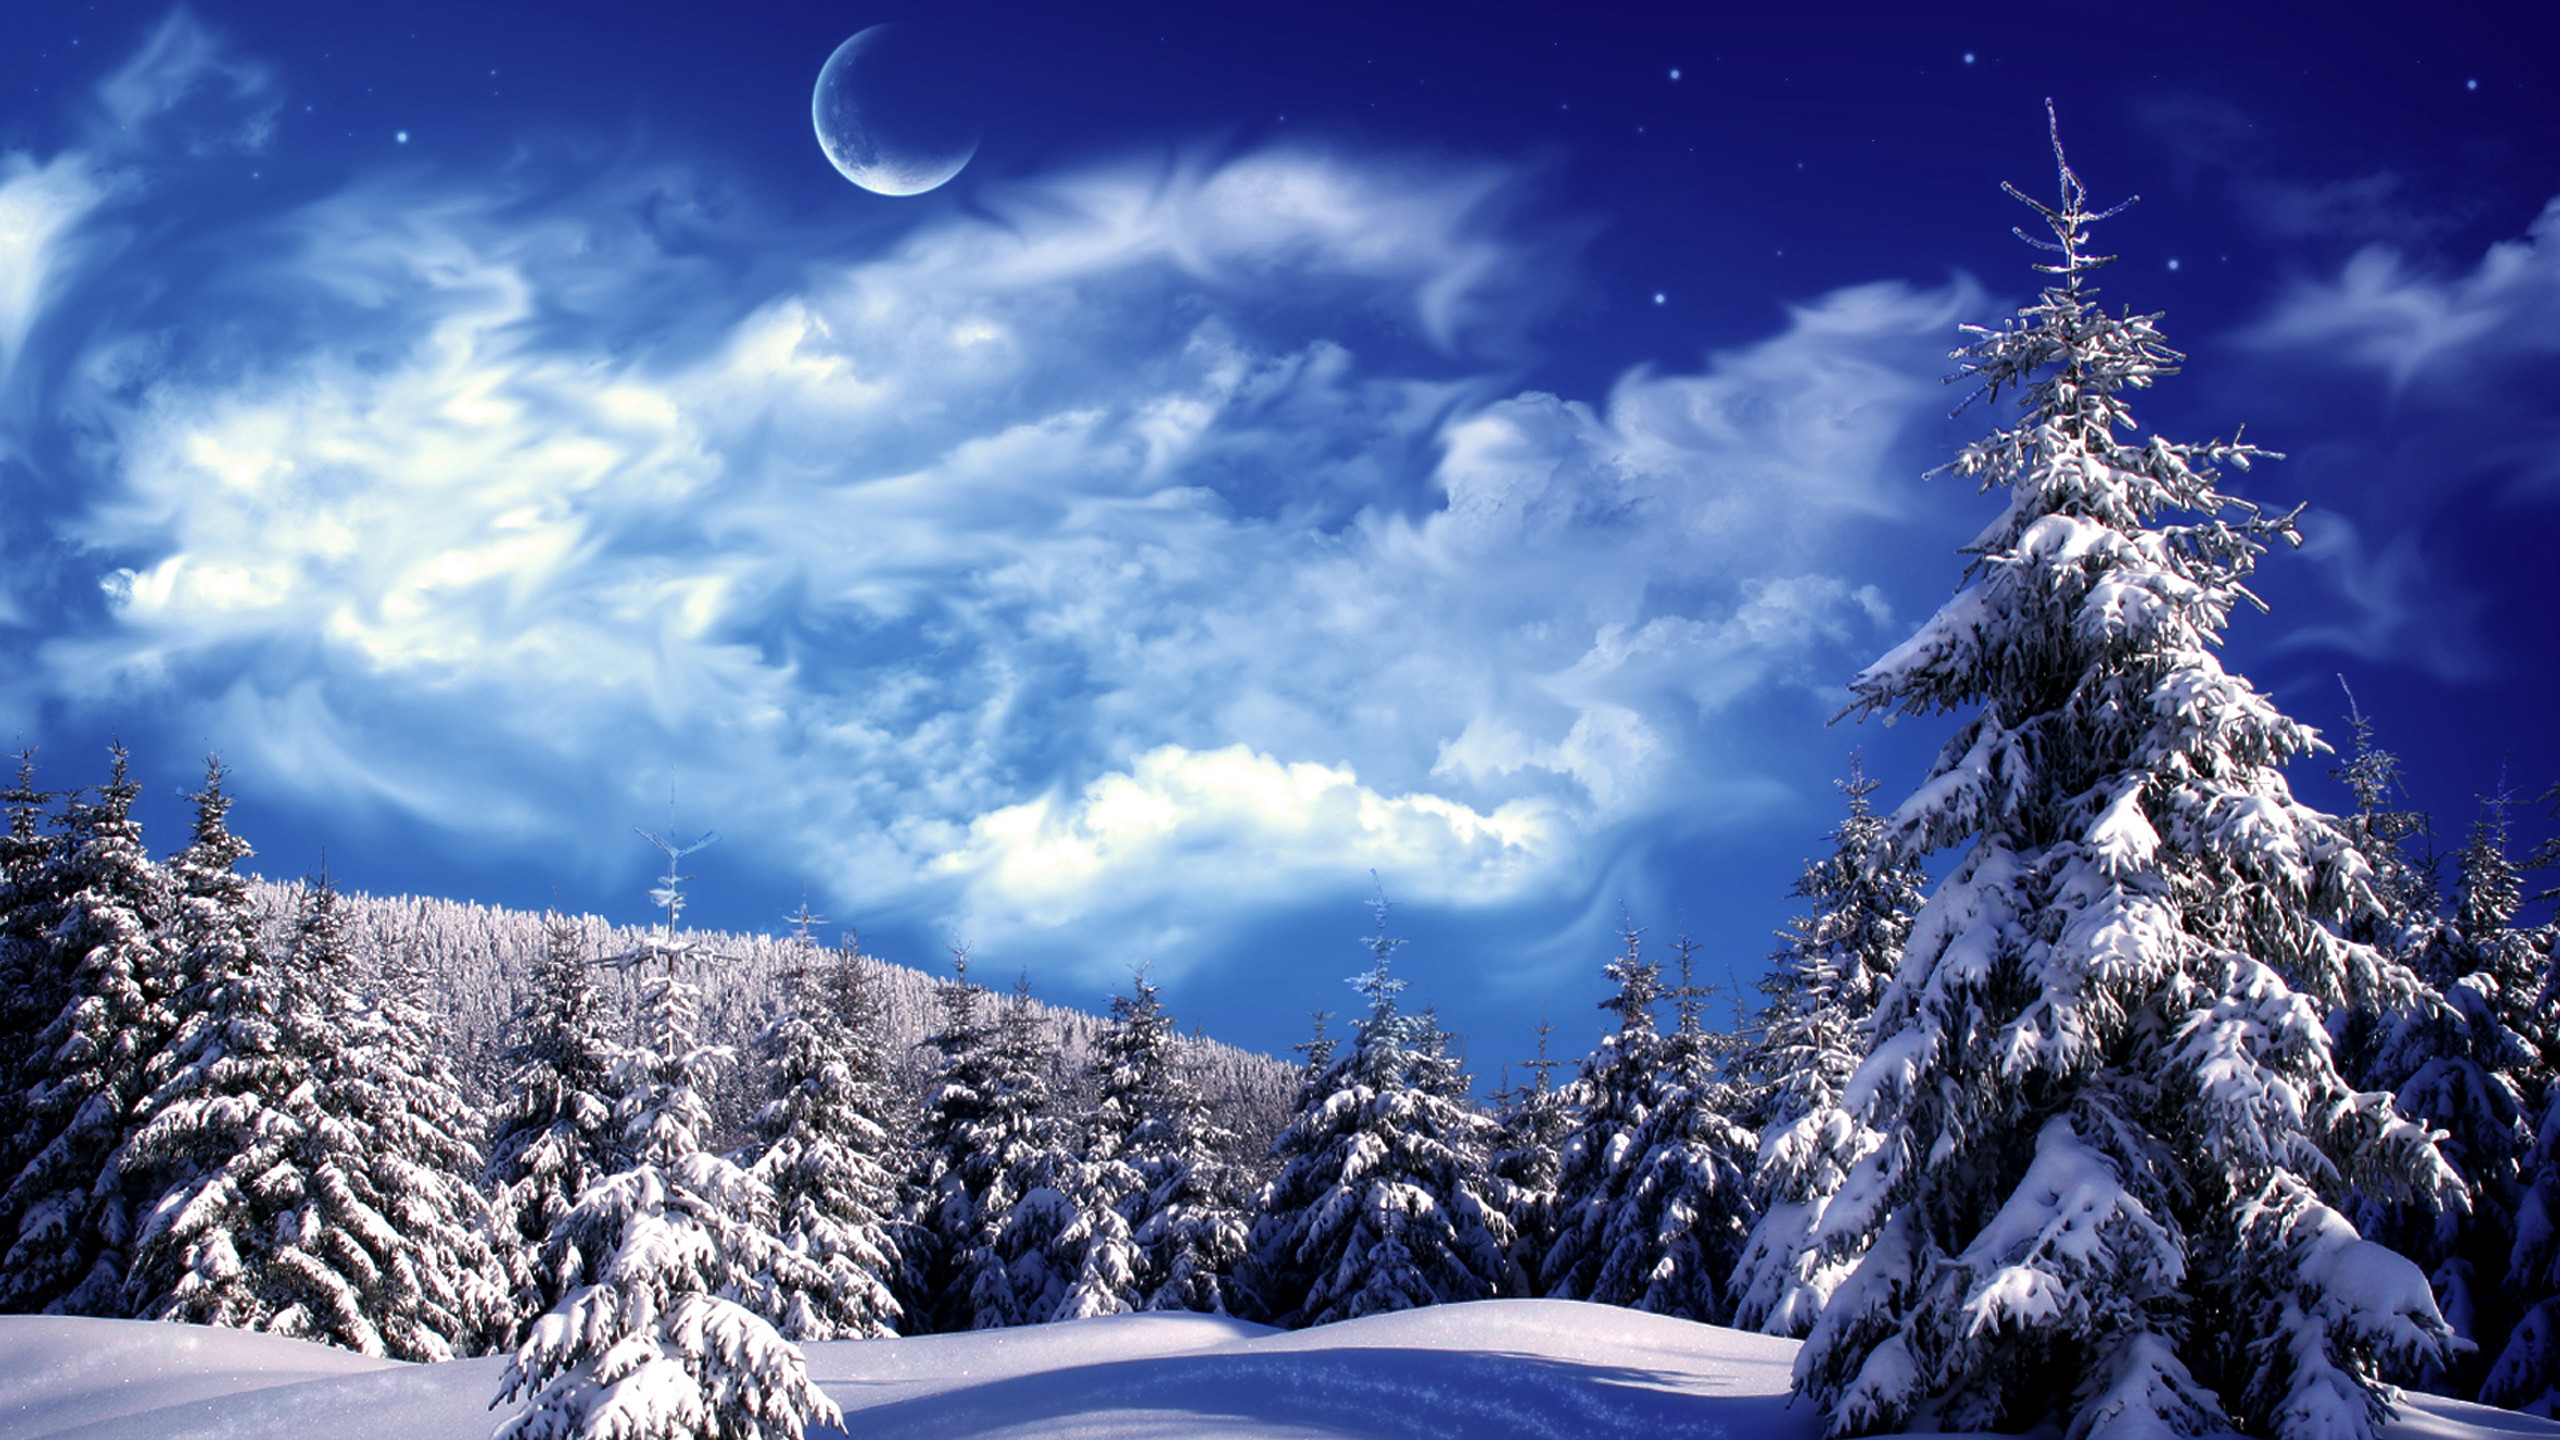 Res: 2560x1440, Winter And Snow Scenes | Free Desktop Wallpapers for Widescreen, HD and  Mobile